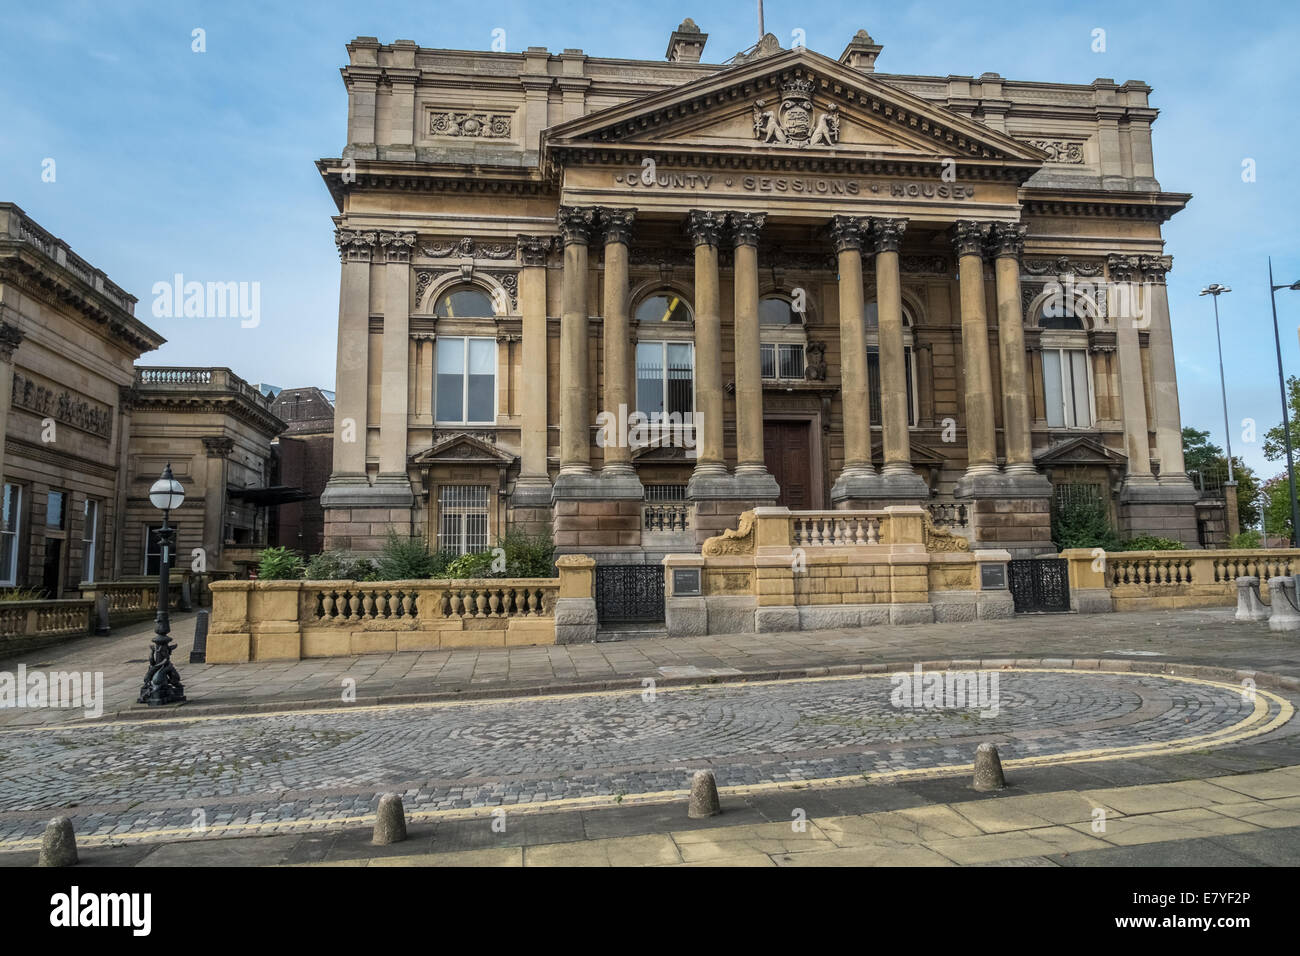 County Sessions House, William Brown Street, Liverpool, Merseyside, England, UK - Stock Image